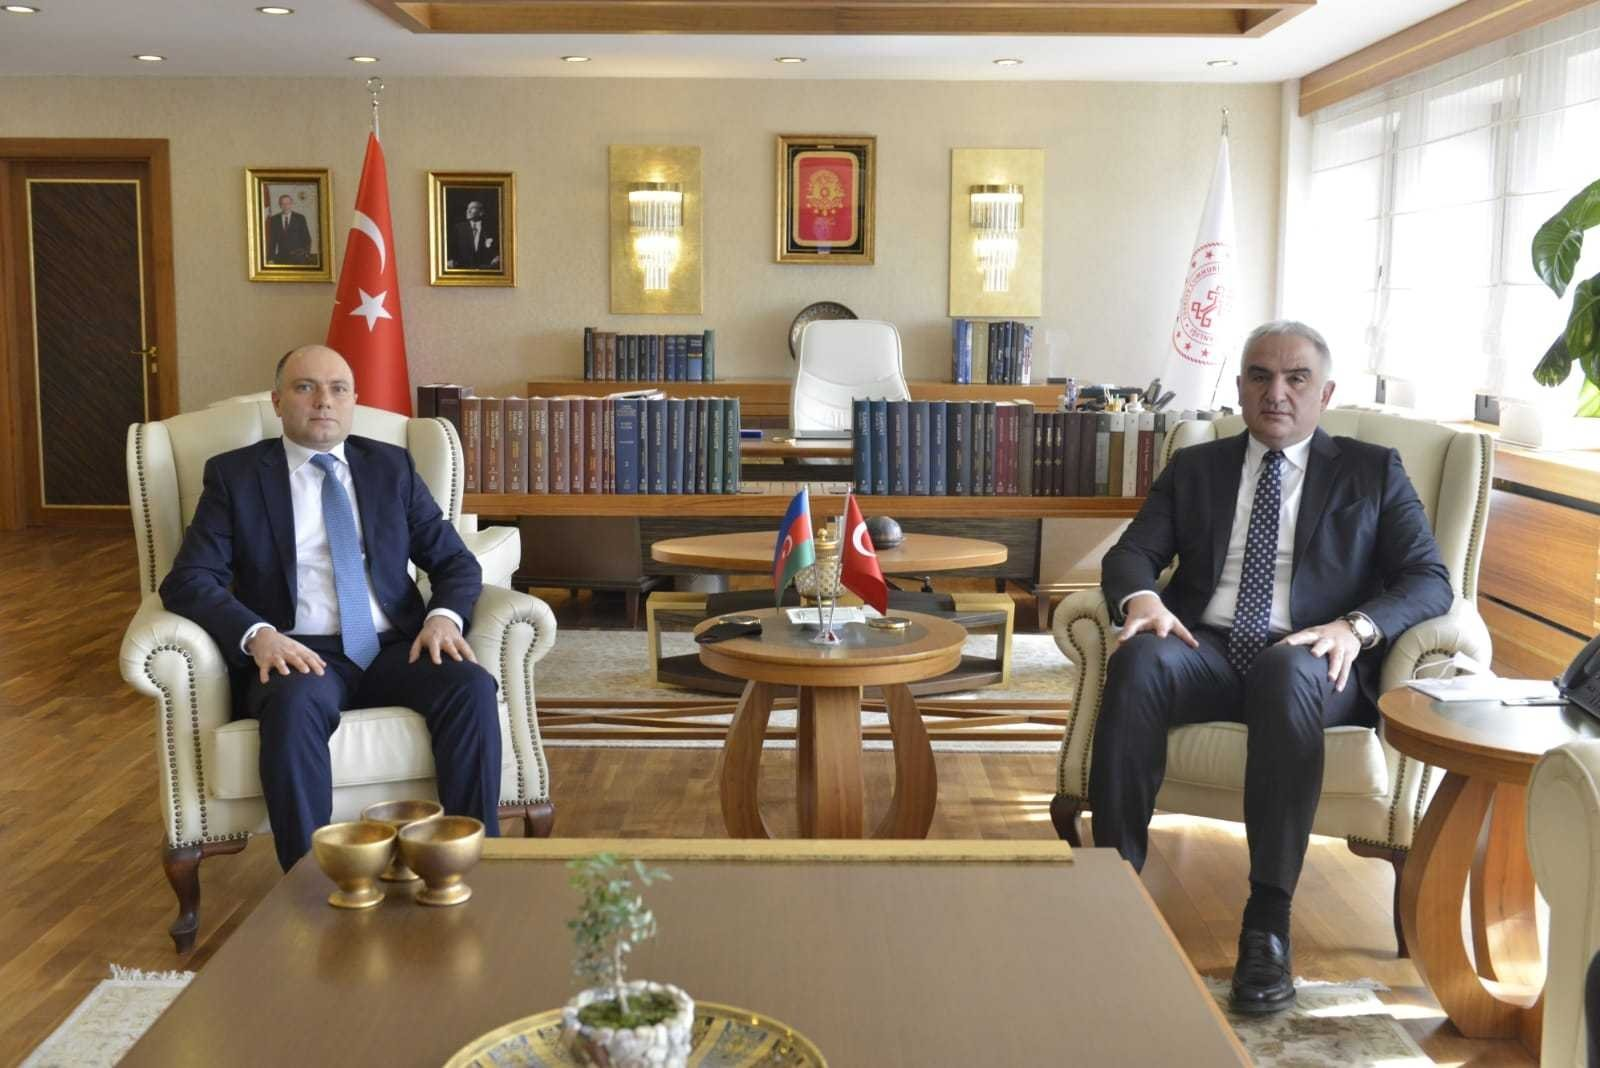 Azerbaijan's Culture Minister Anar Karimov (L) and Turkey's Culture and Tourism Minister Mehmet Nuri Ersoy at the first Turkey-Azerbaijan Joint Committee Meeting, Ankara, March 1, 2021. (Courtesy of Ministry of Culture and Tourism)